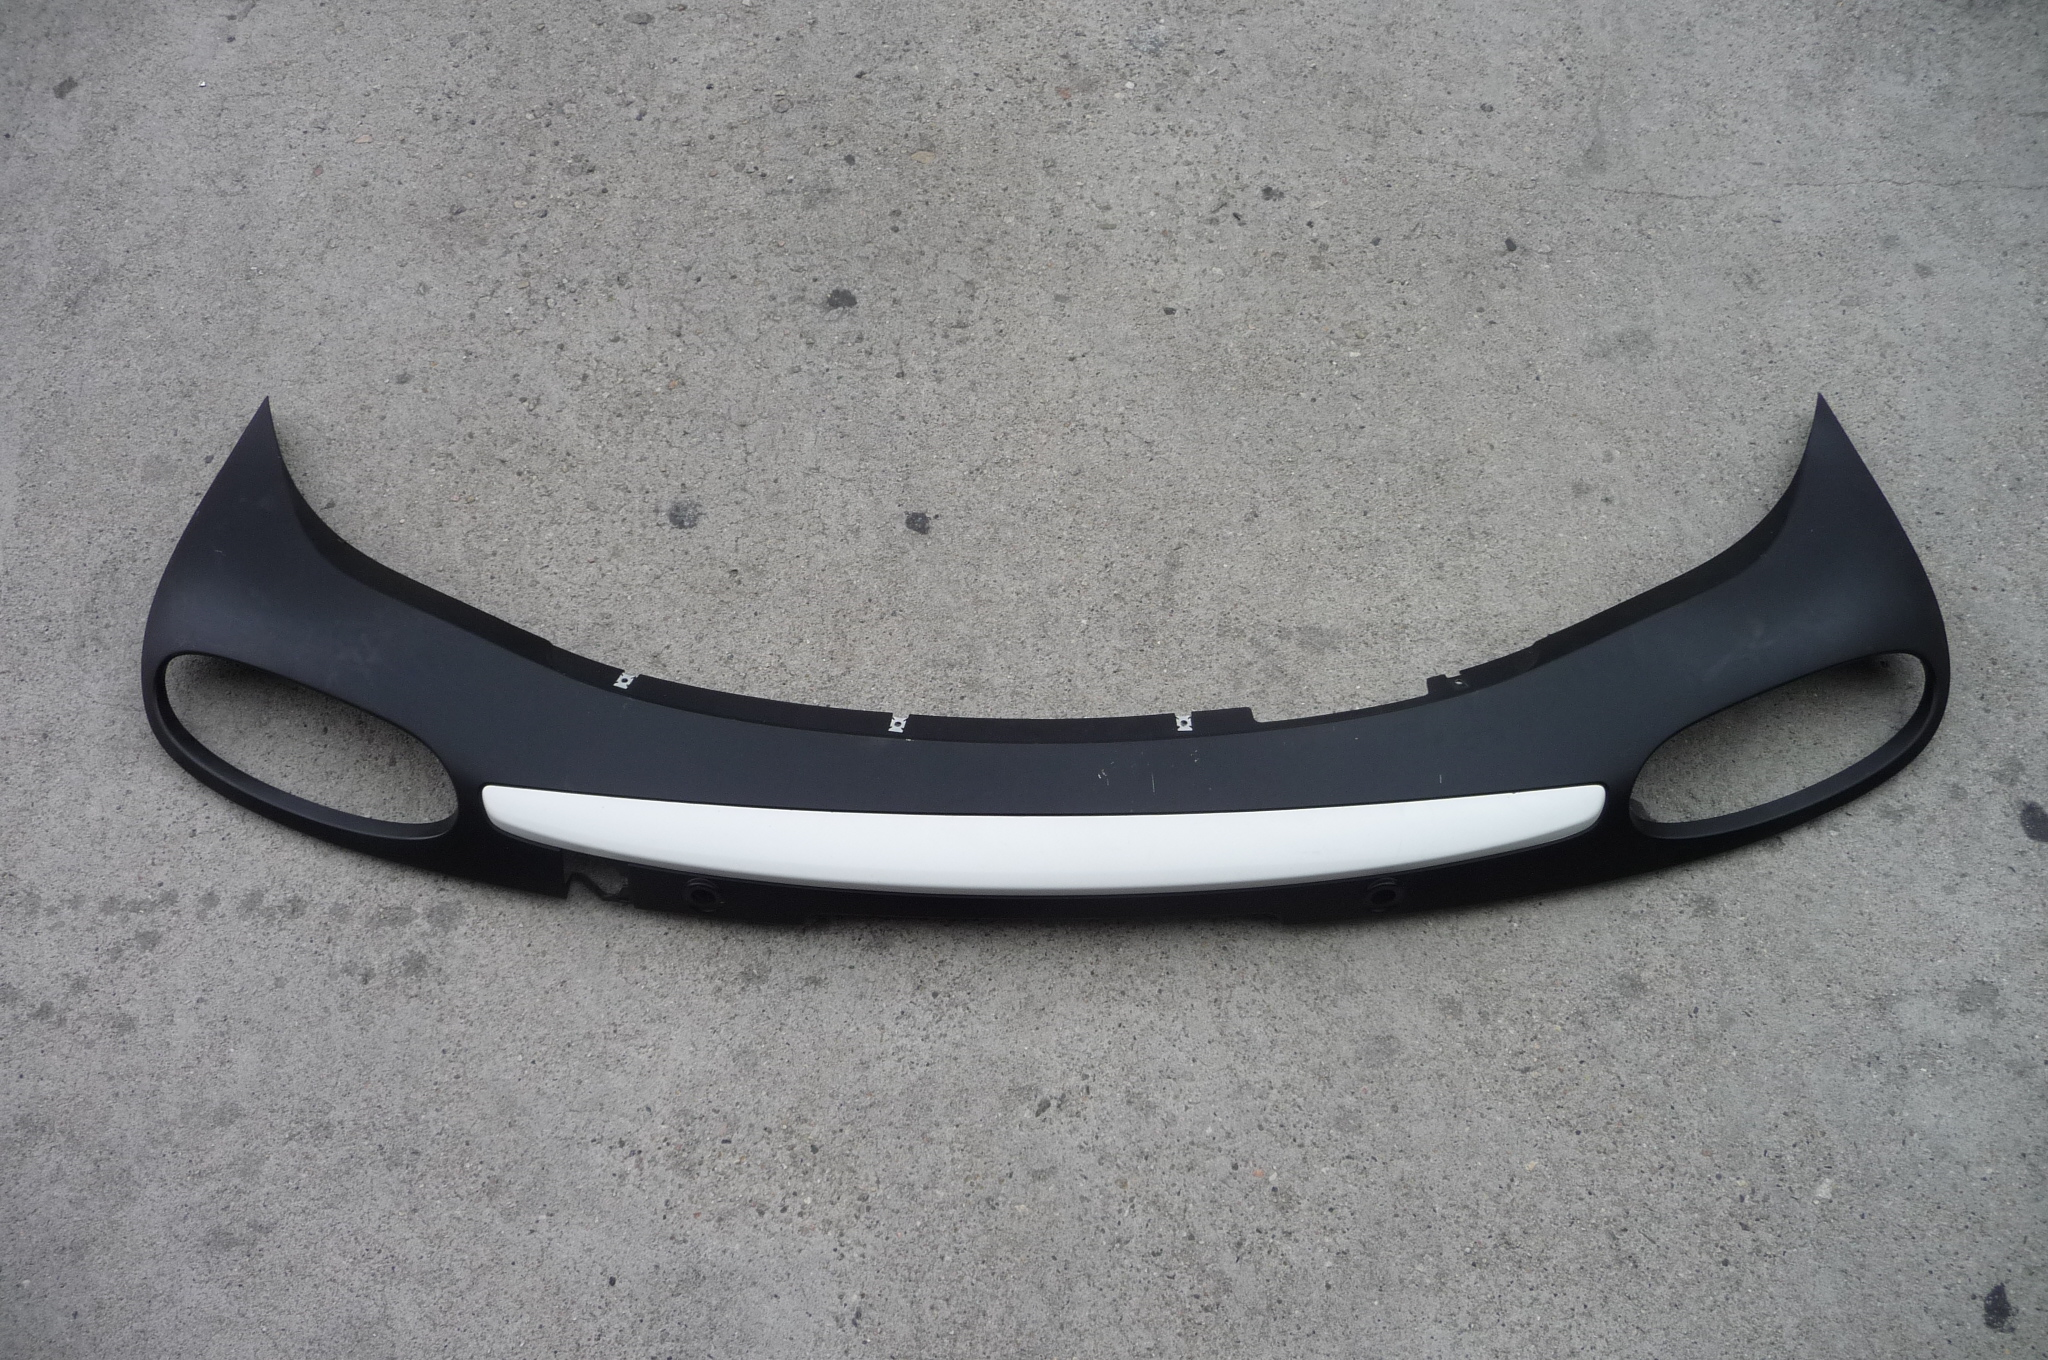 2012 2013 Bentley Continental GT GTC Rear Bumper Molding Cover Grille Skirt Wht  - Used Auto Parts Store   LA Global Parts